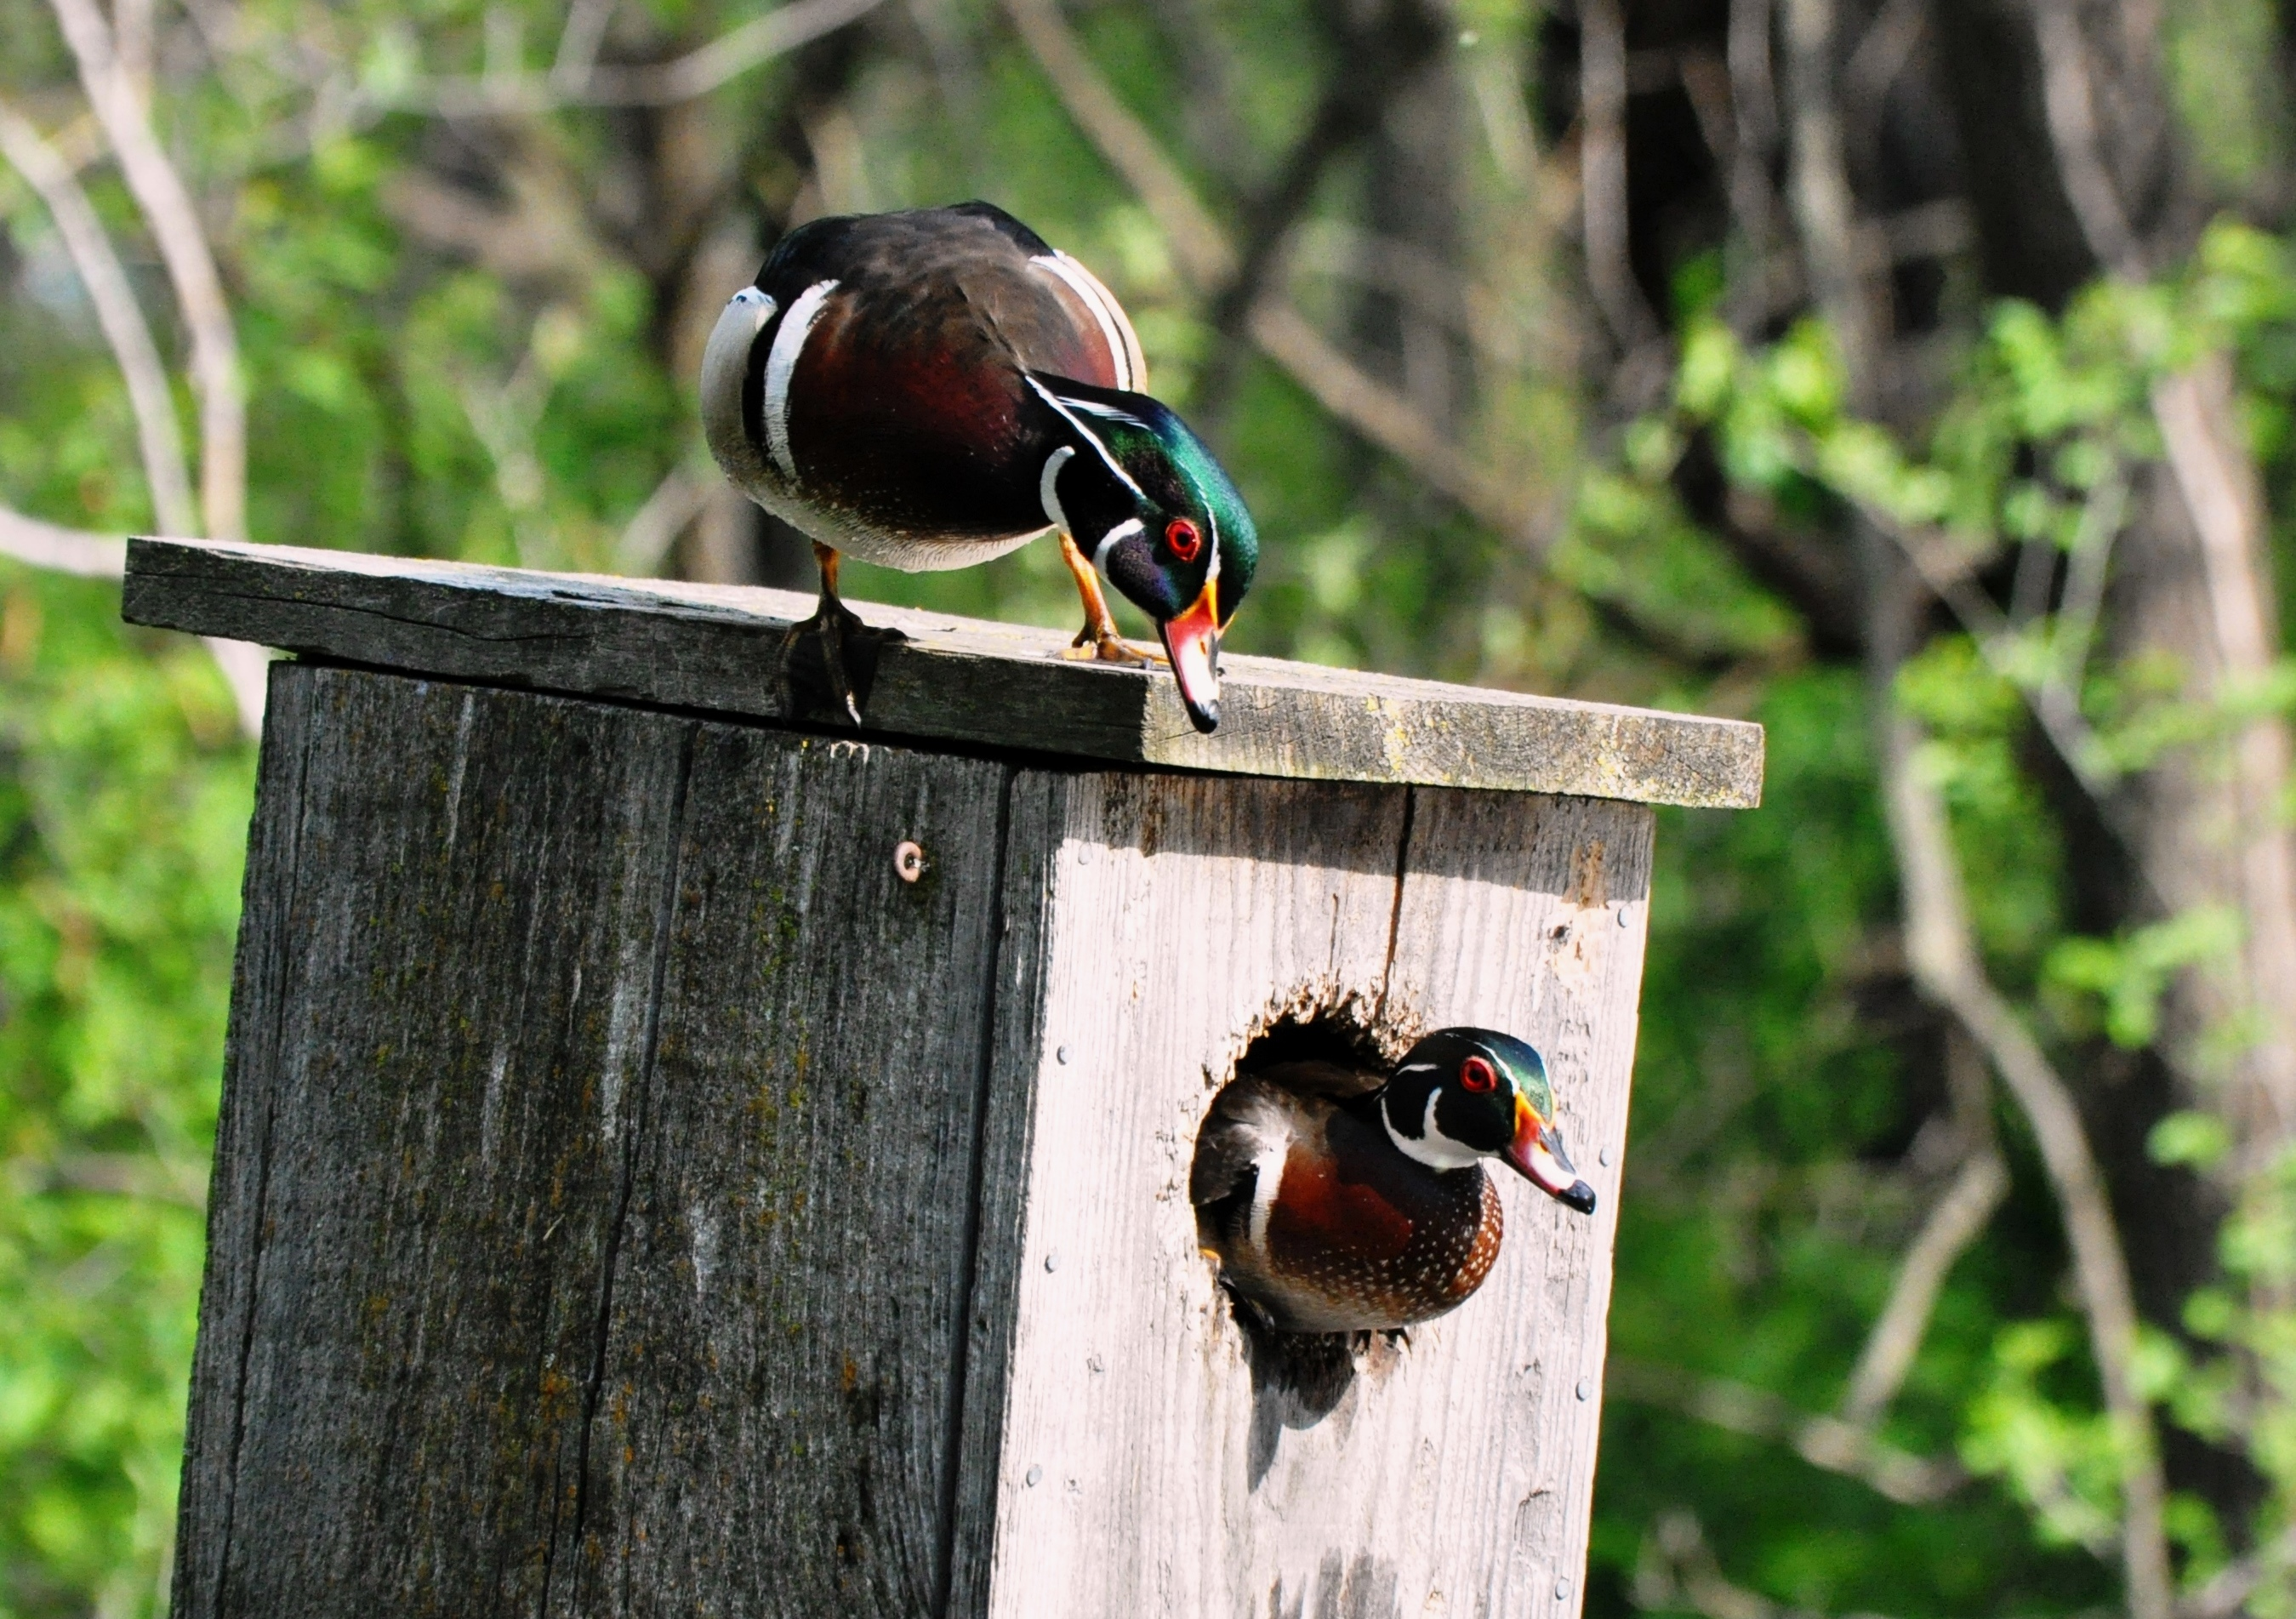 Will Drake Wood Ducks Enter Nesting Cavities